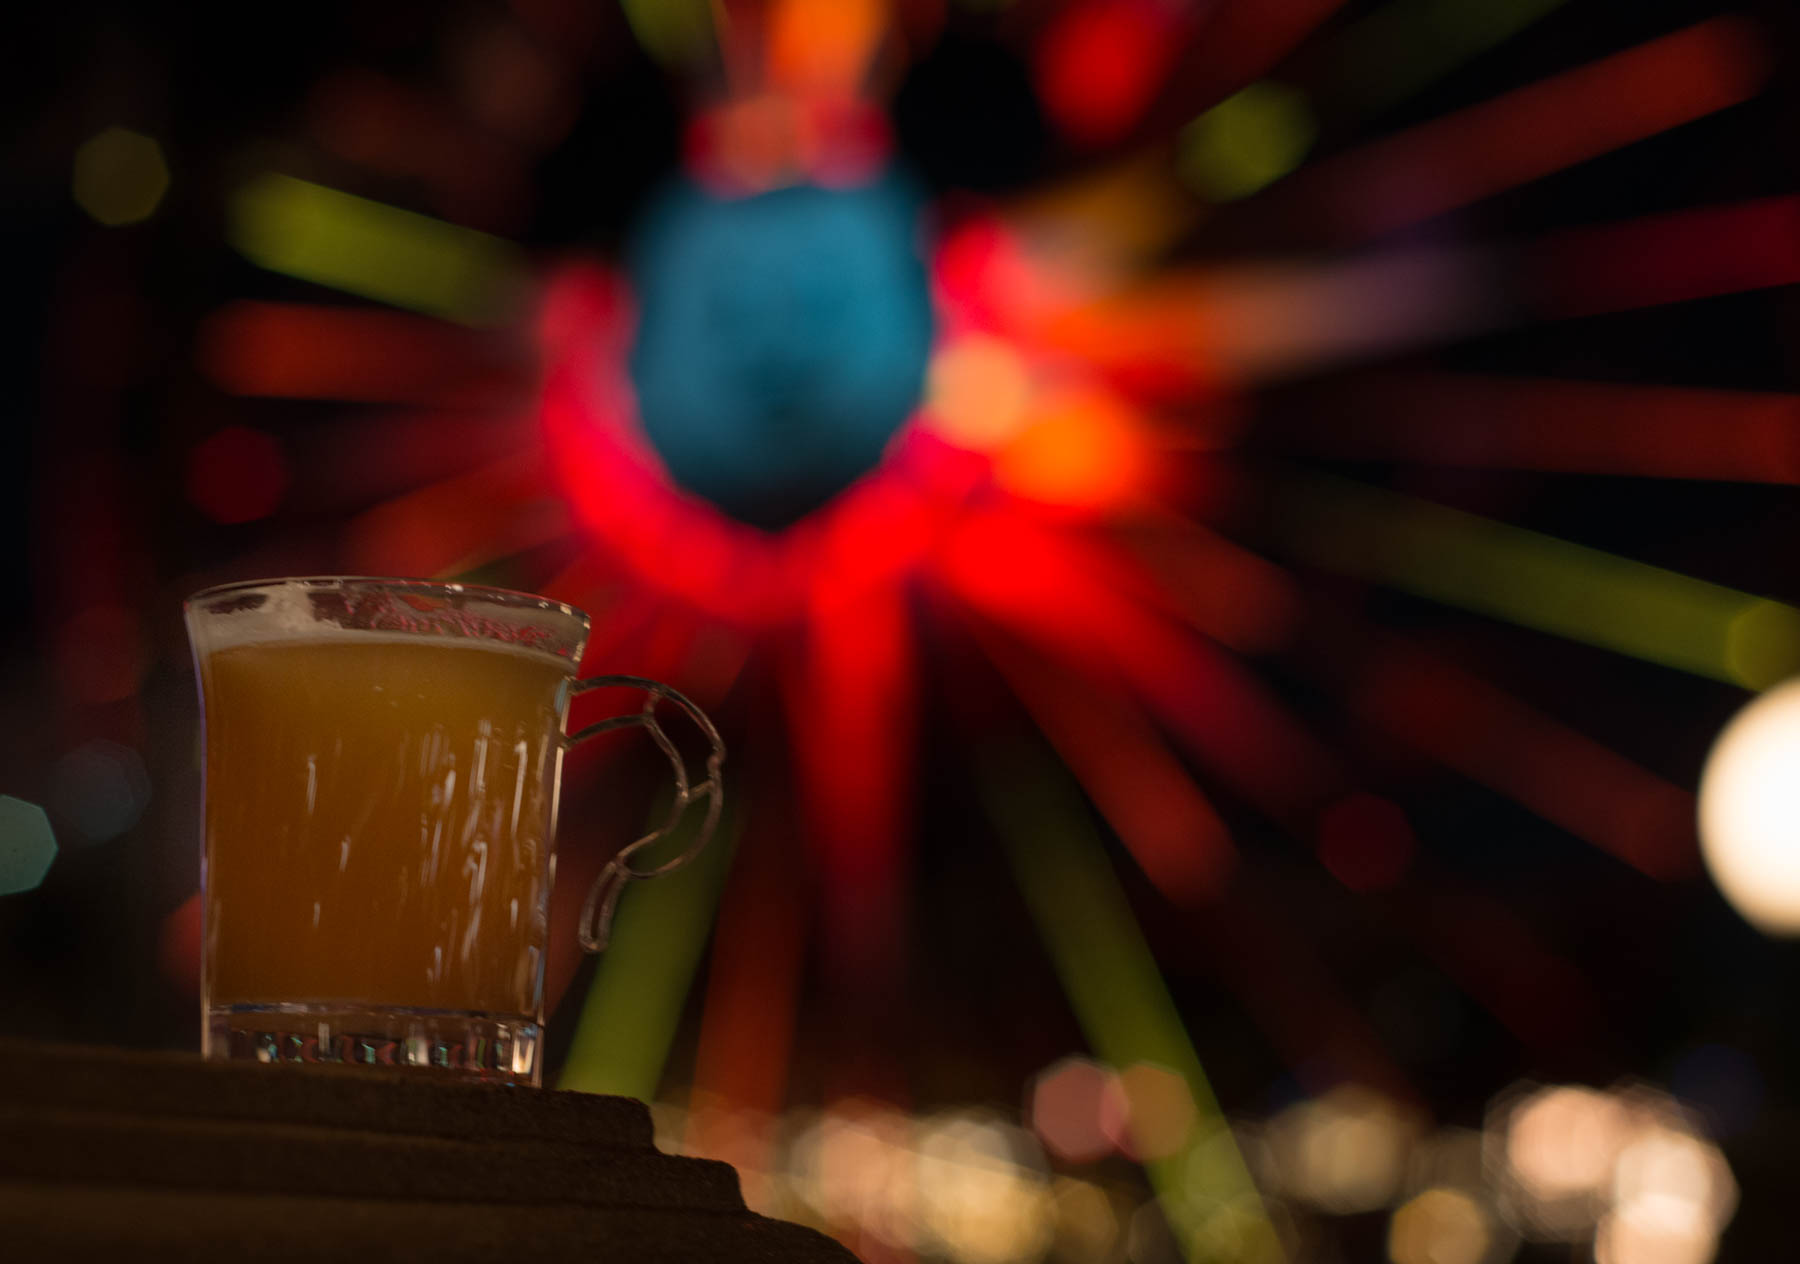 Warm Bourbon Cider with a Homemade Marshmallow from Festival of Holidays in Disneyland's California Adventure